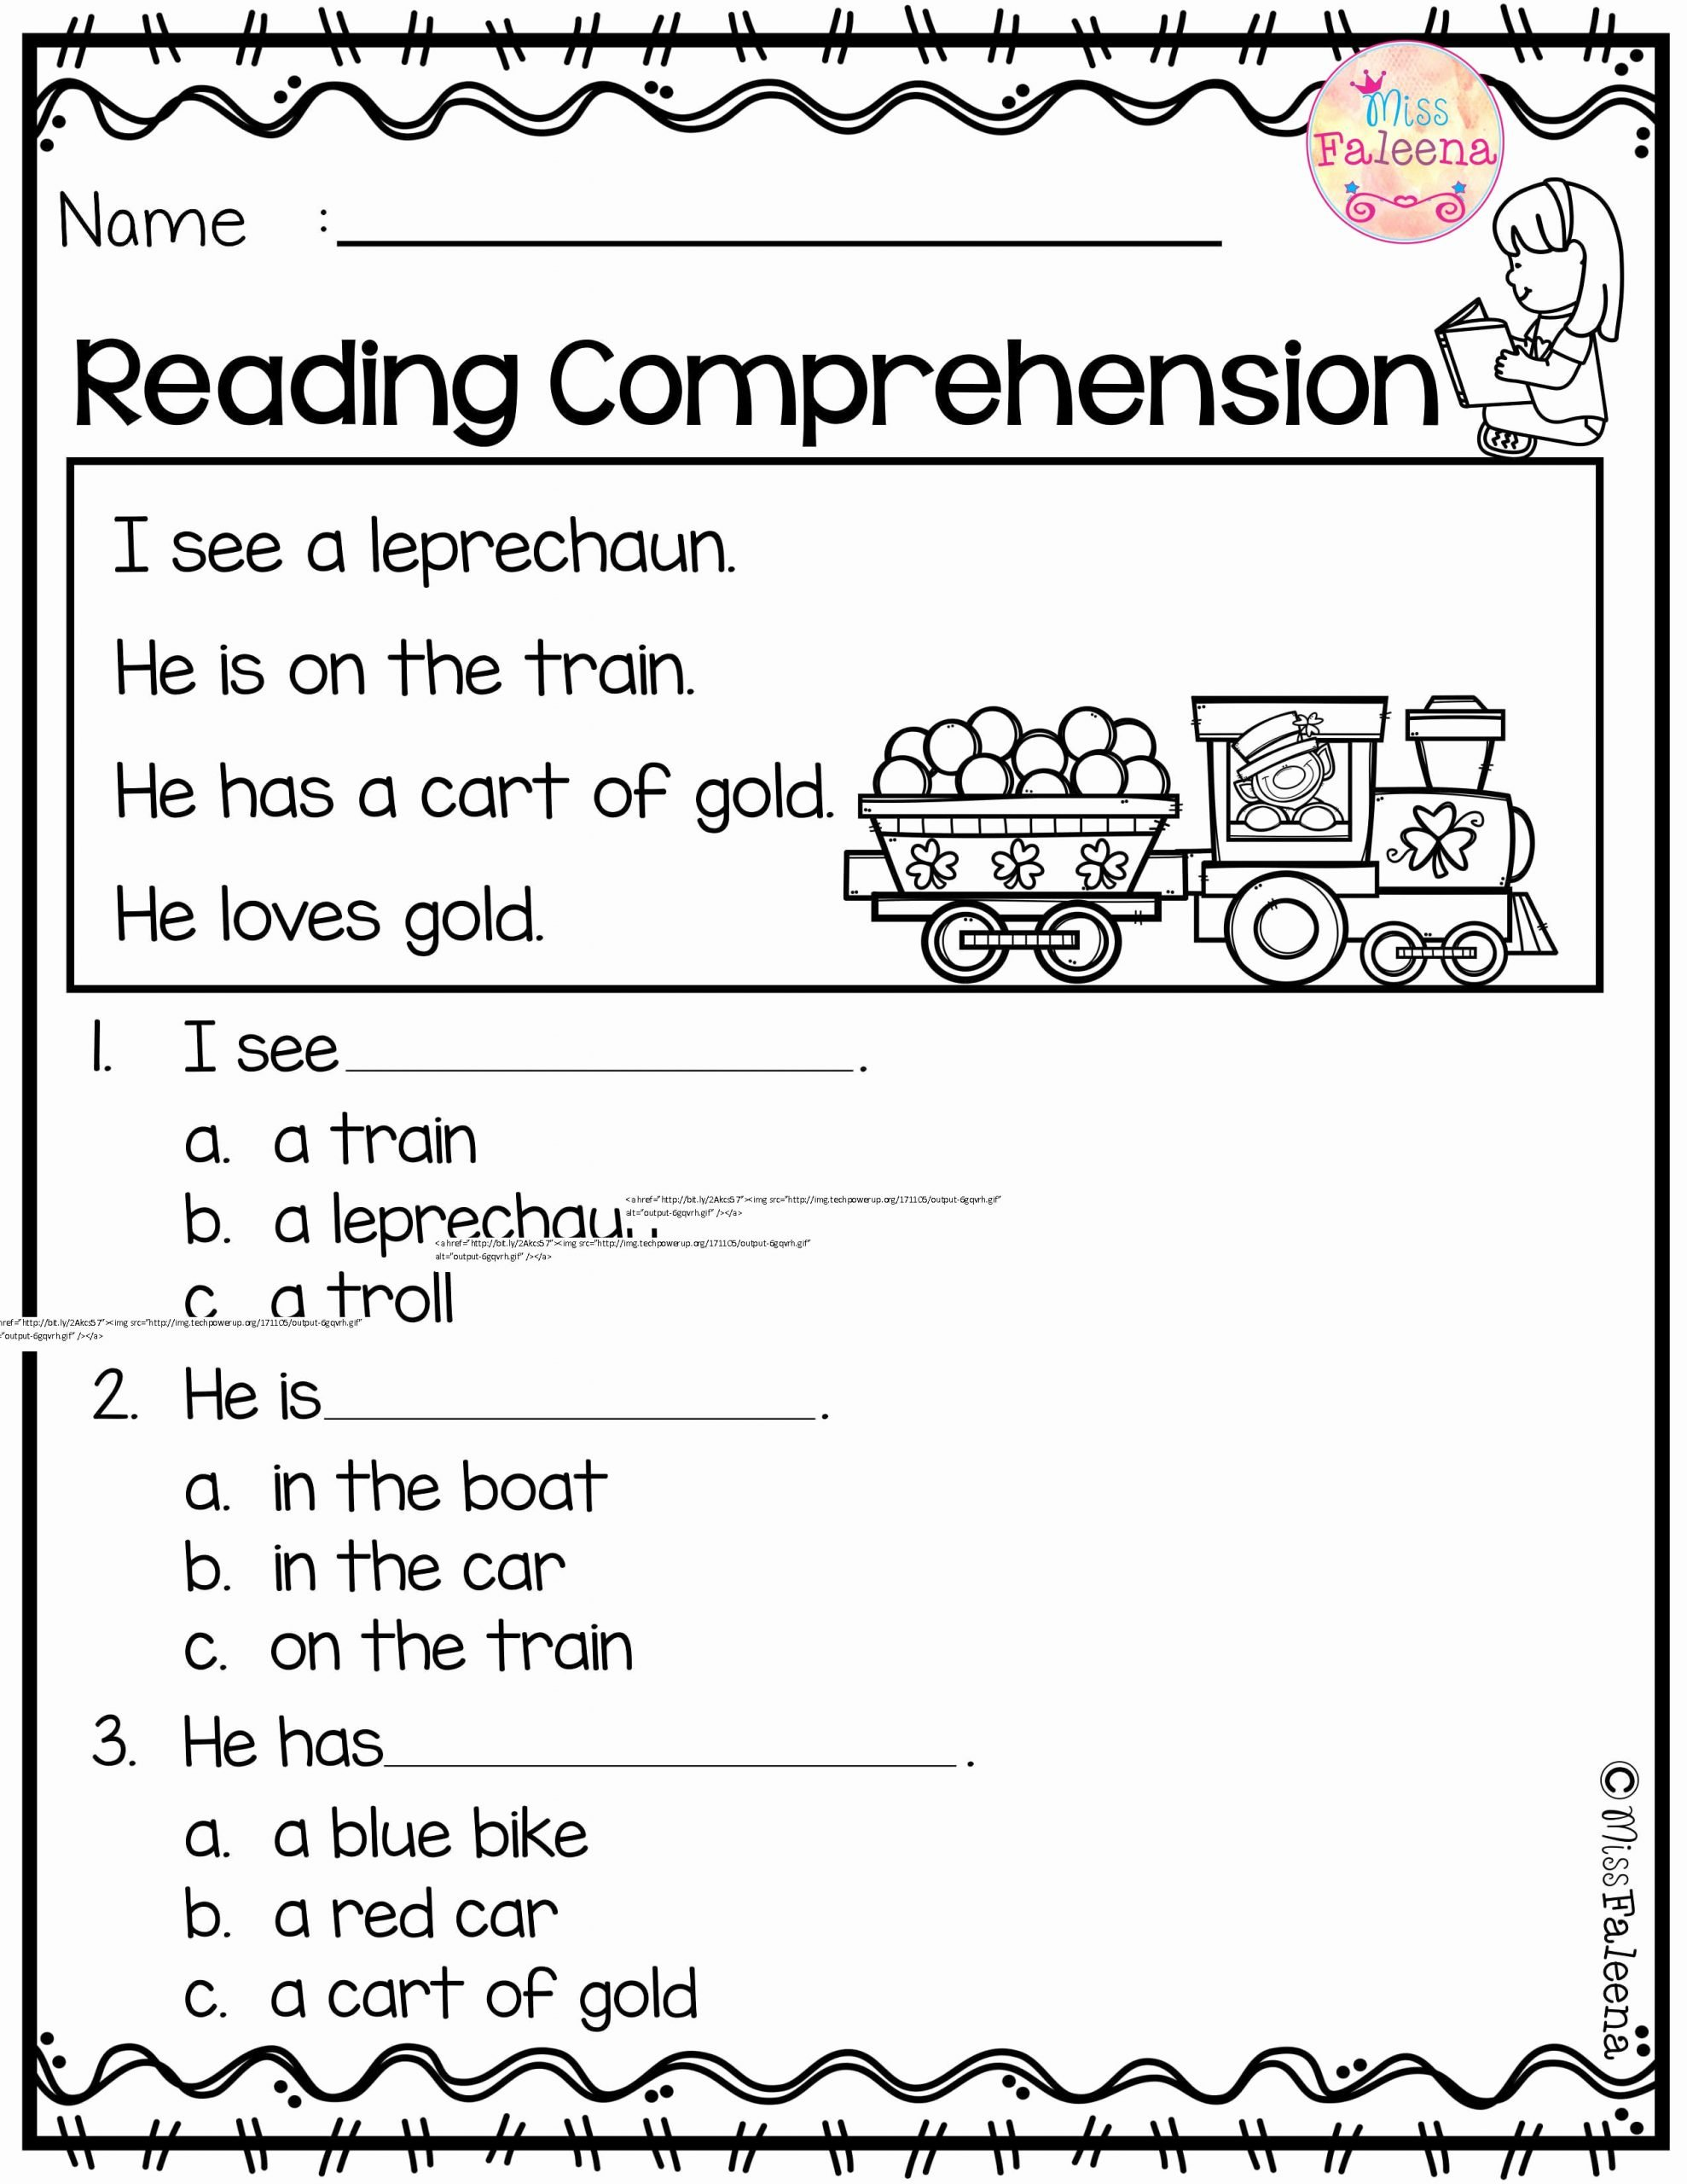 Comprehension Worksheets for Preschoolers Unique March Reading Prehension is Suitable for Kindergarten